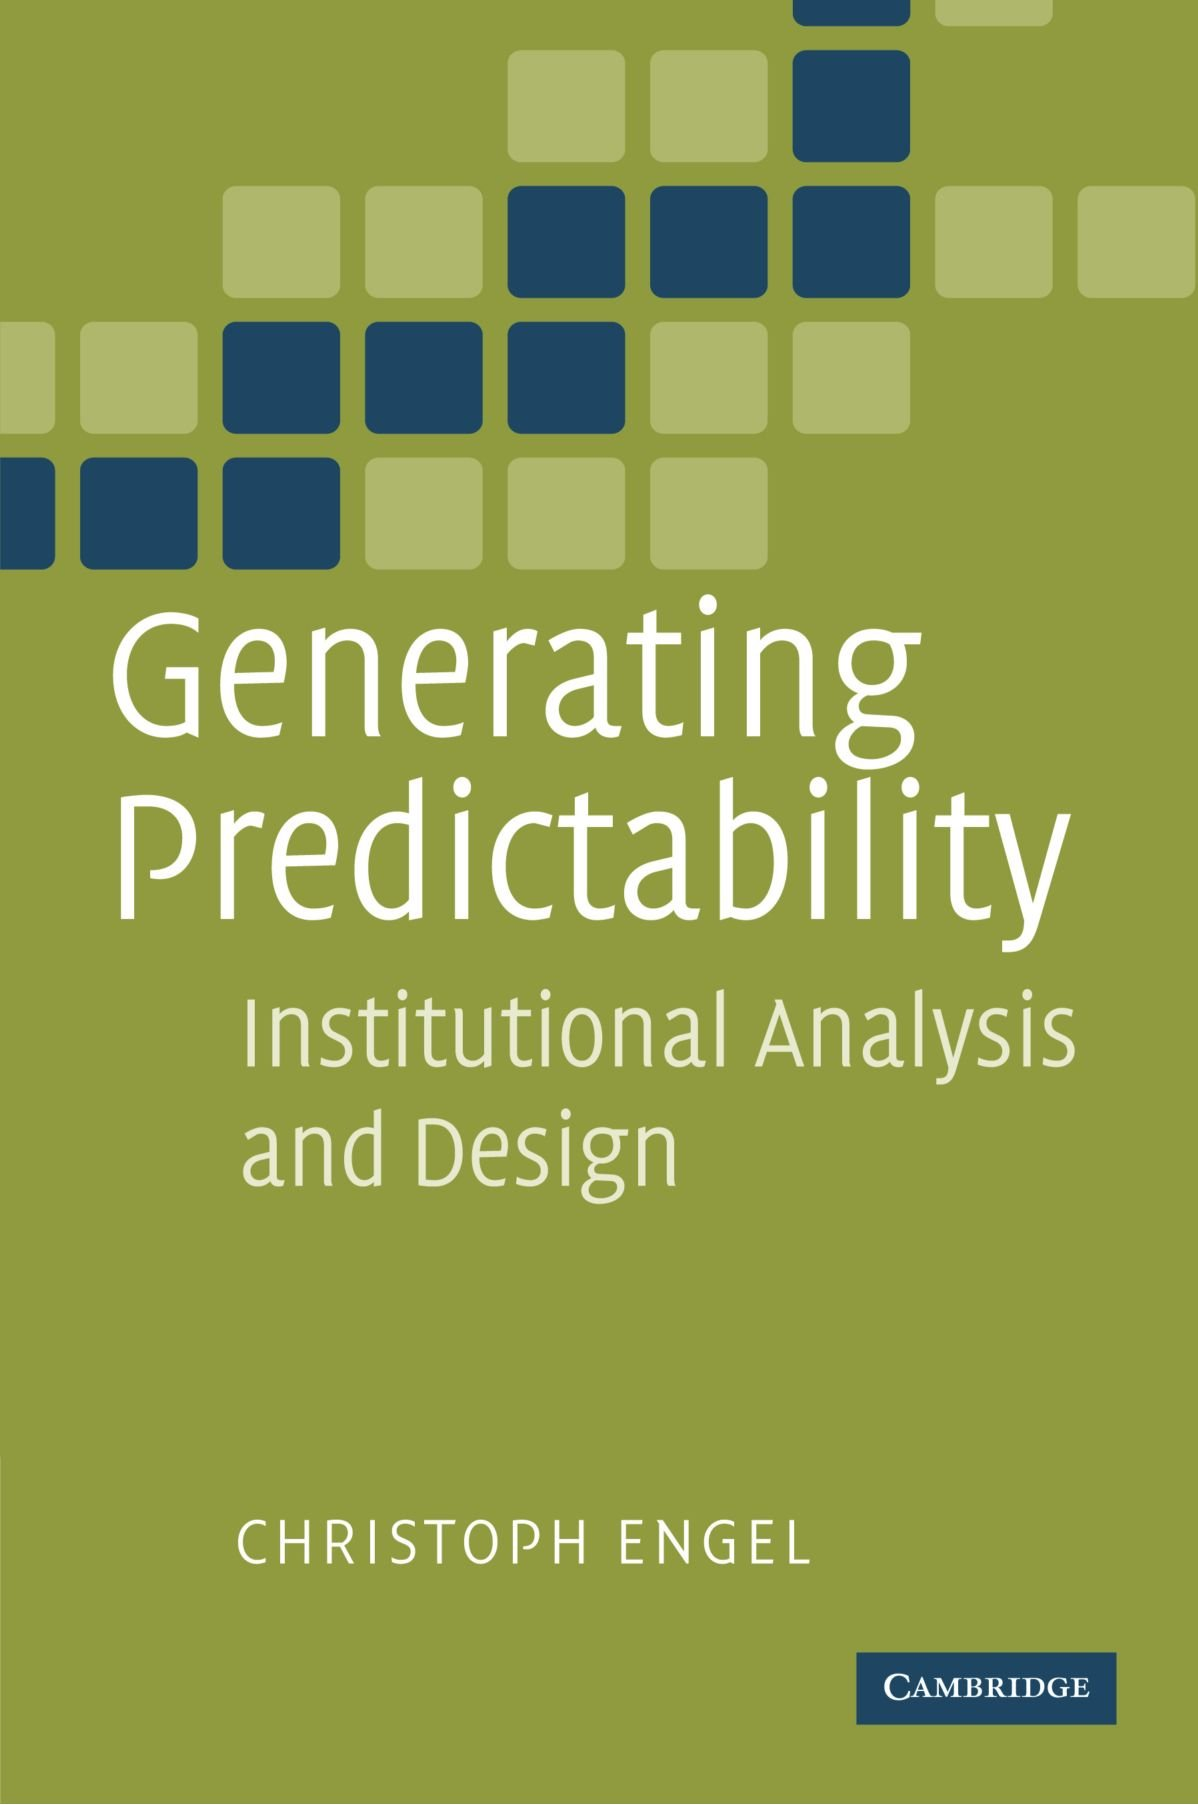 Generating Predictability: Institutional Analysis and Design